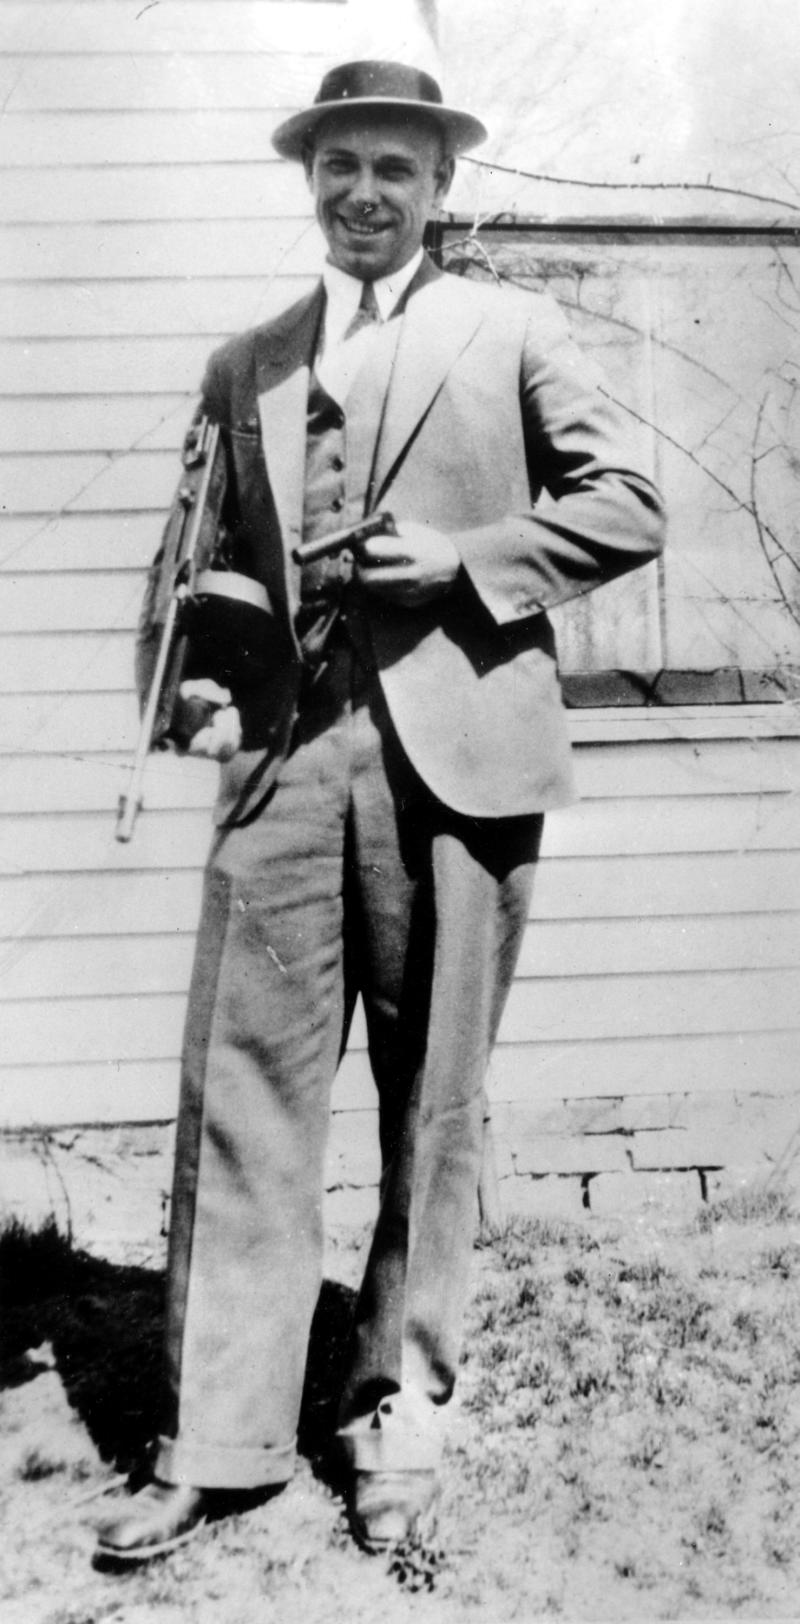 The body of the 1930s gangster is set to be exhumed from an Indianapolis cemetery more than 85 years after he was killed by FBI agents. (AP Photo, File)